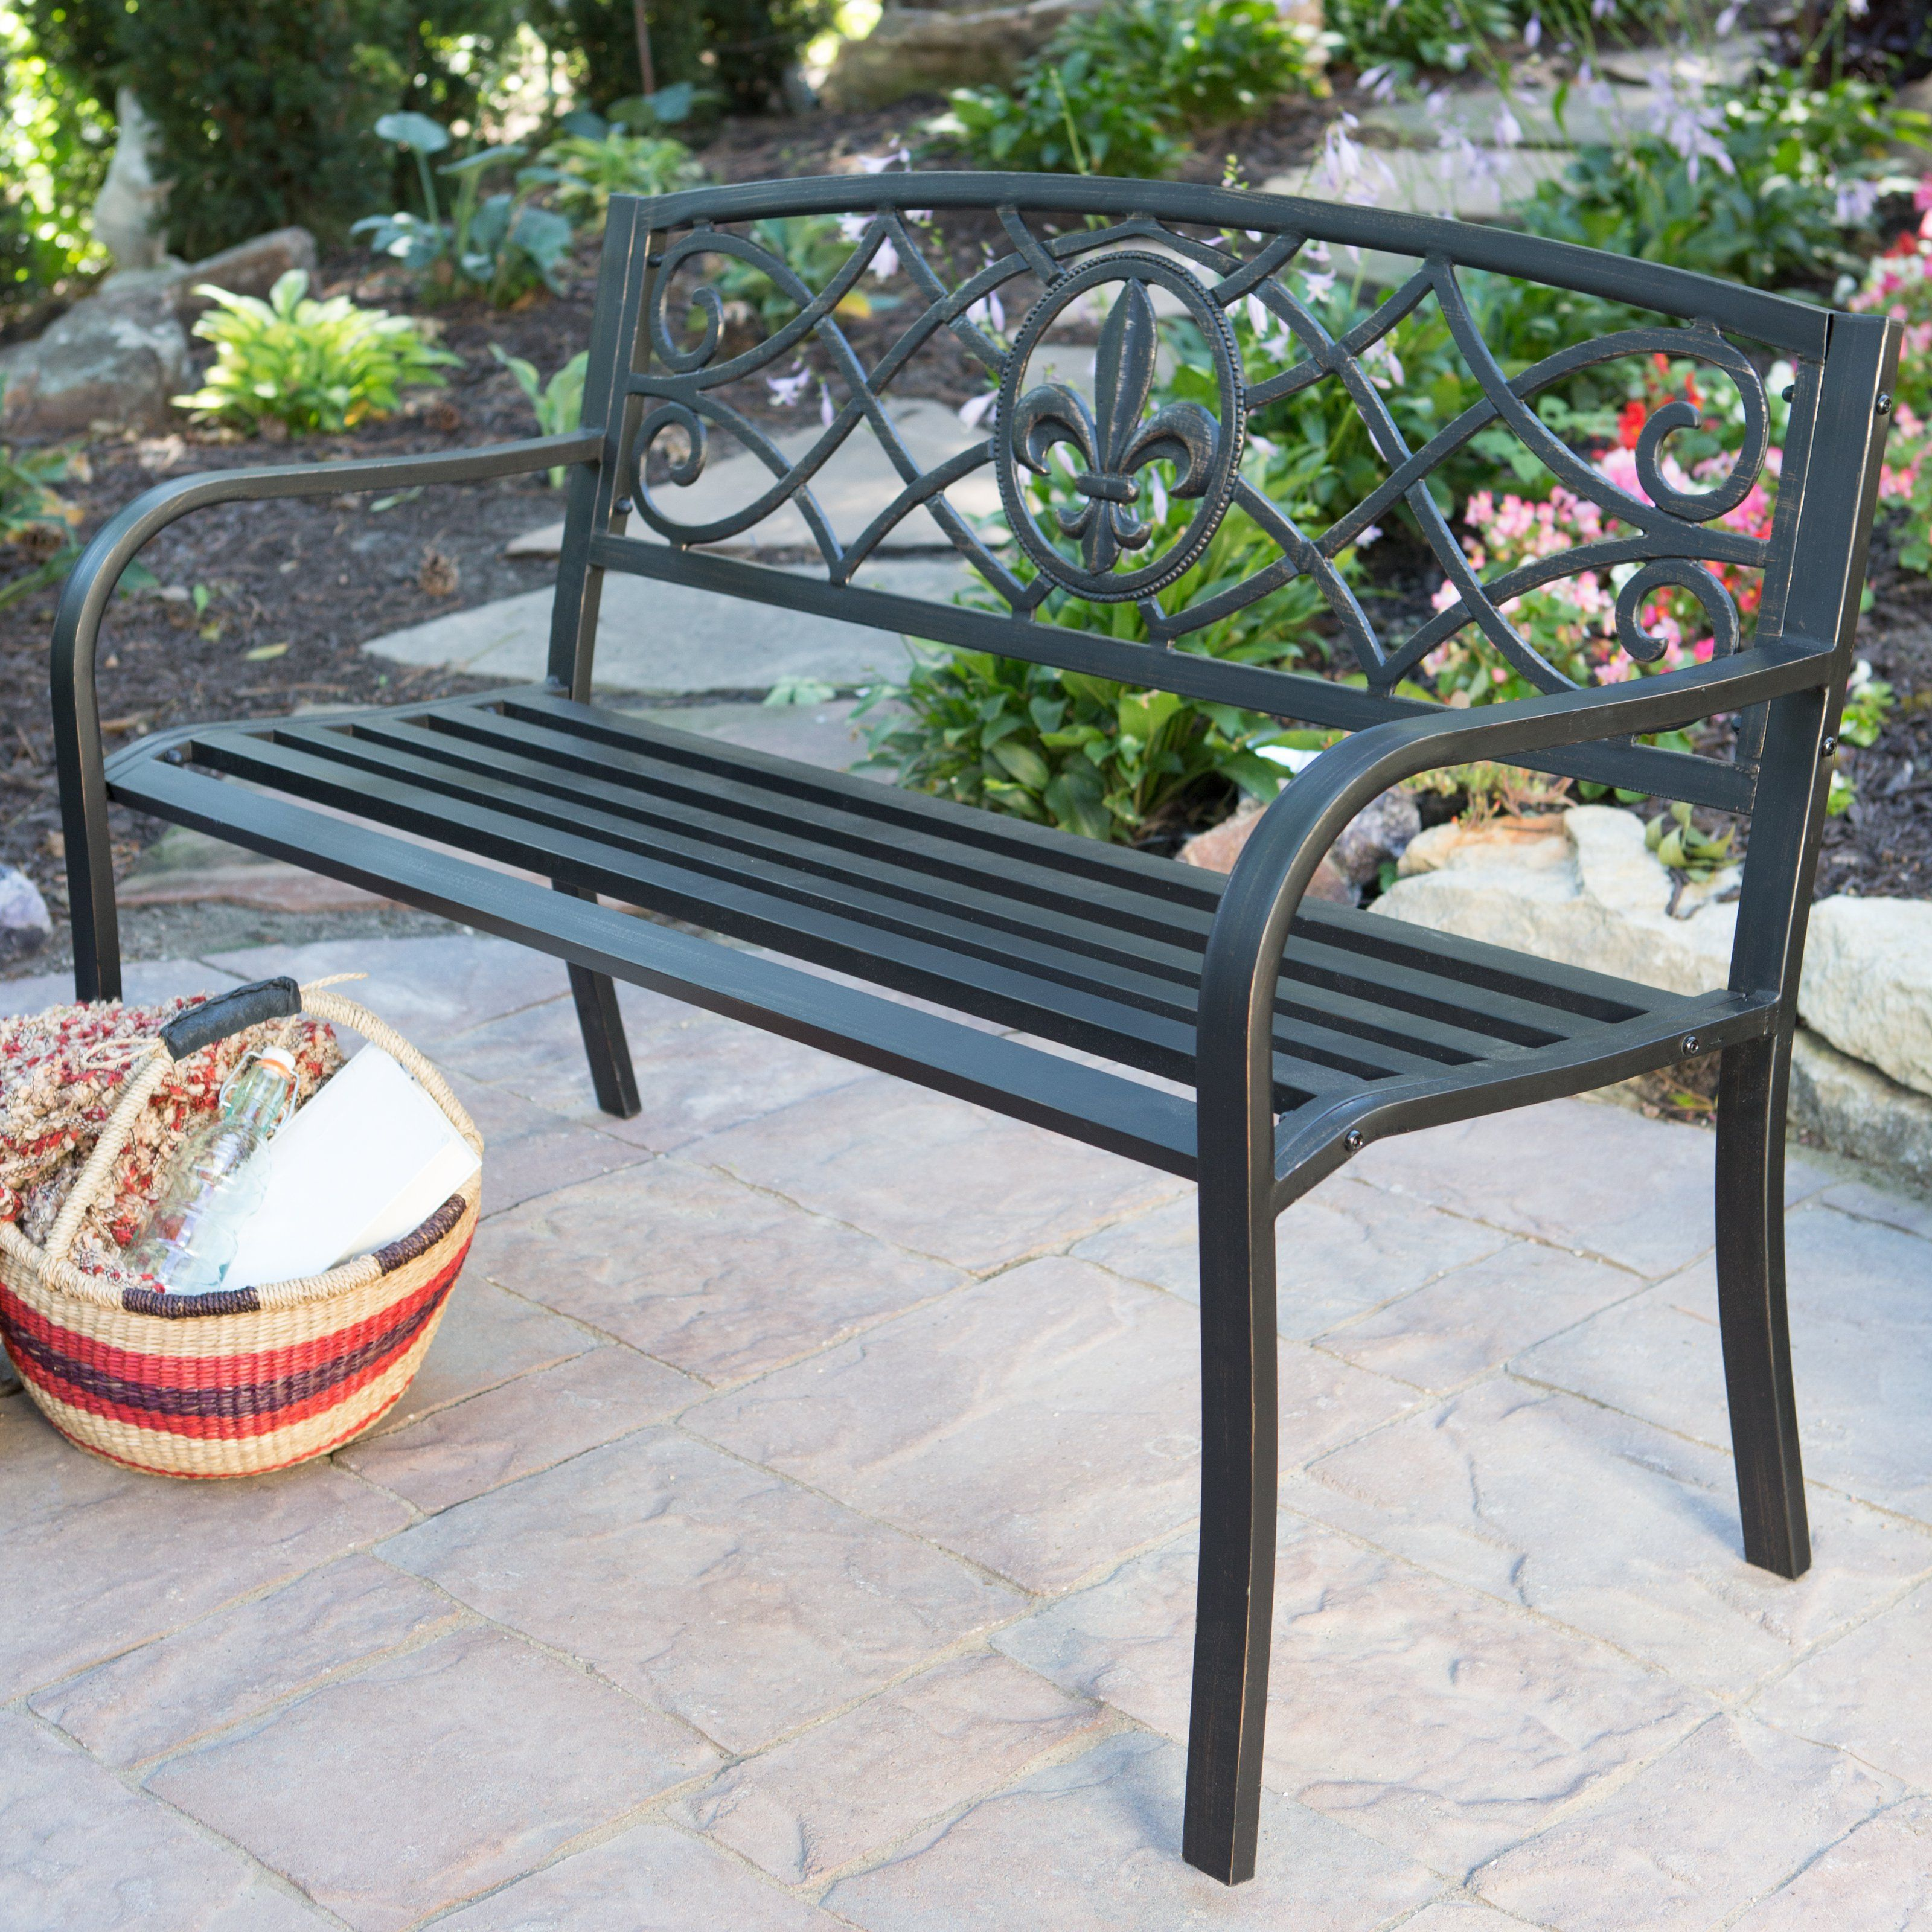 buy ironwork top bench garden img collection furniture iron roll outdoor english metal seater handmade verdigris living